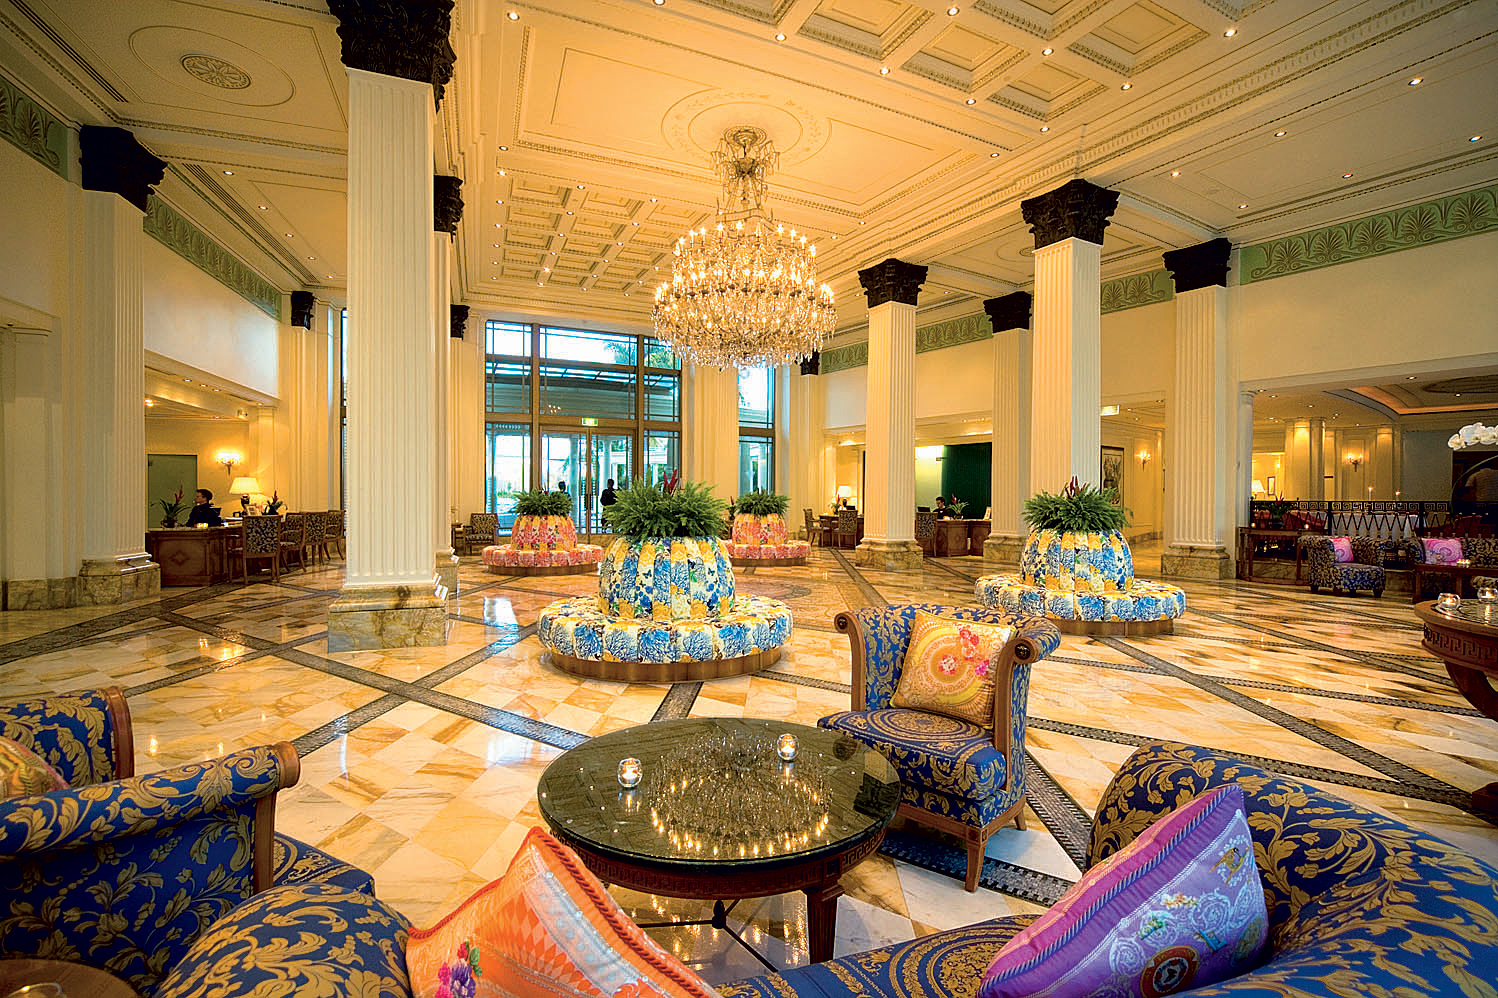 5 Luxury Hotels You Should Visit Before You Decorate Your Home